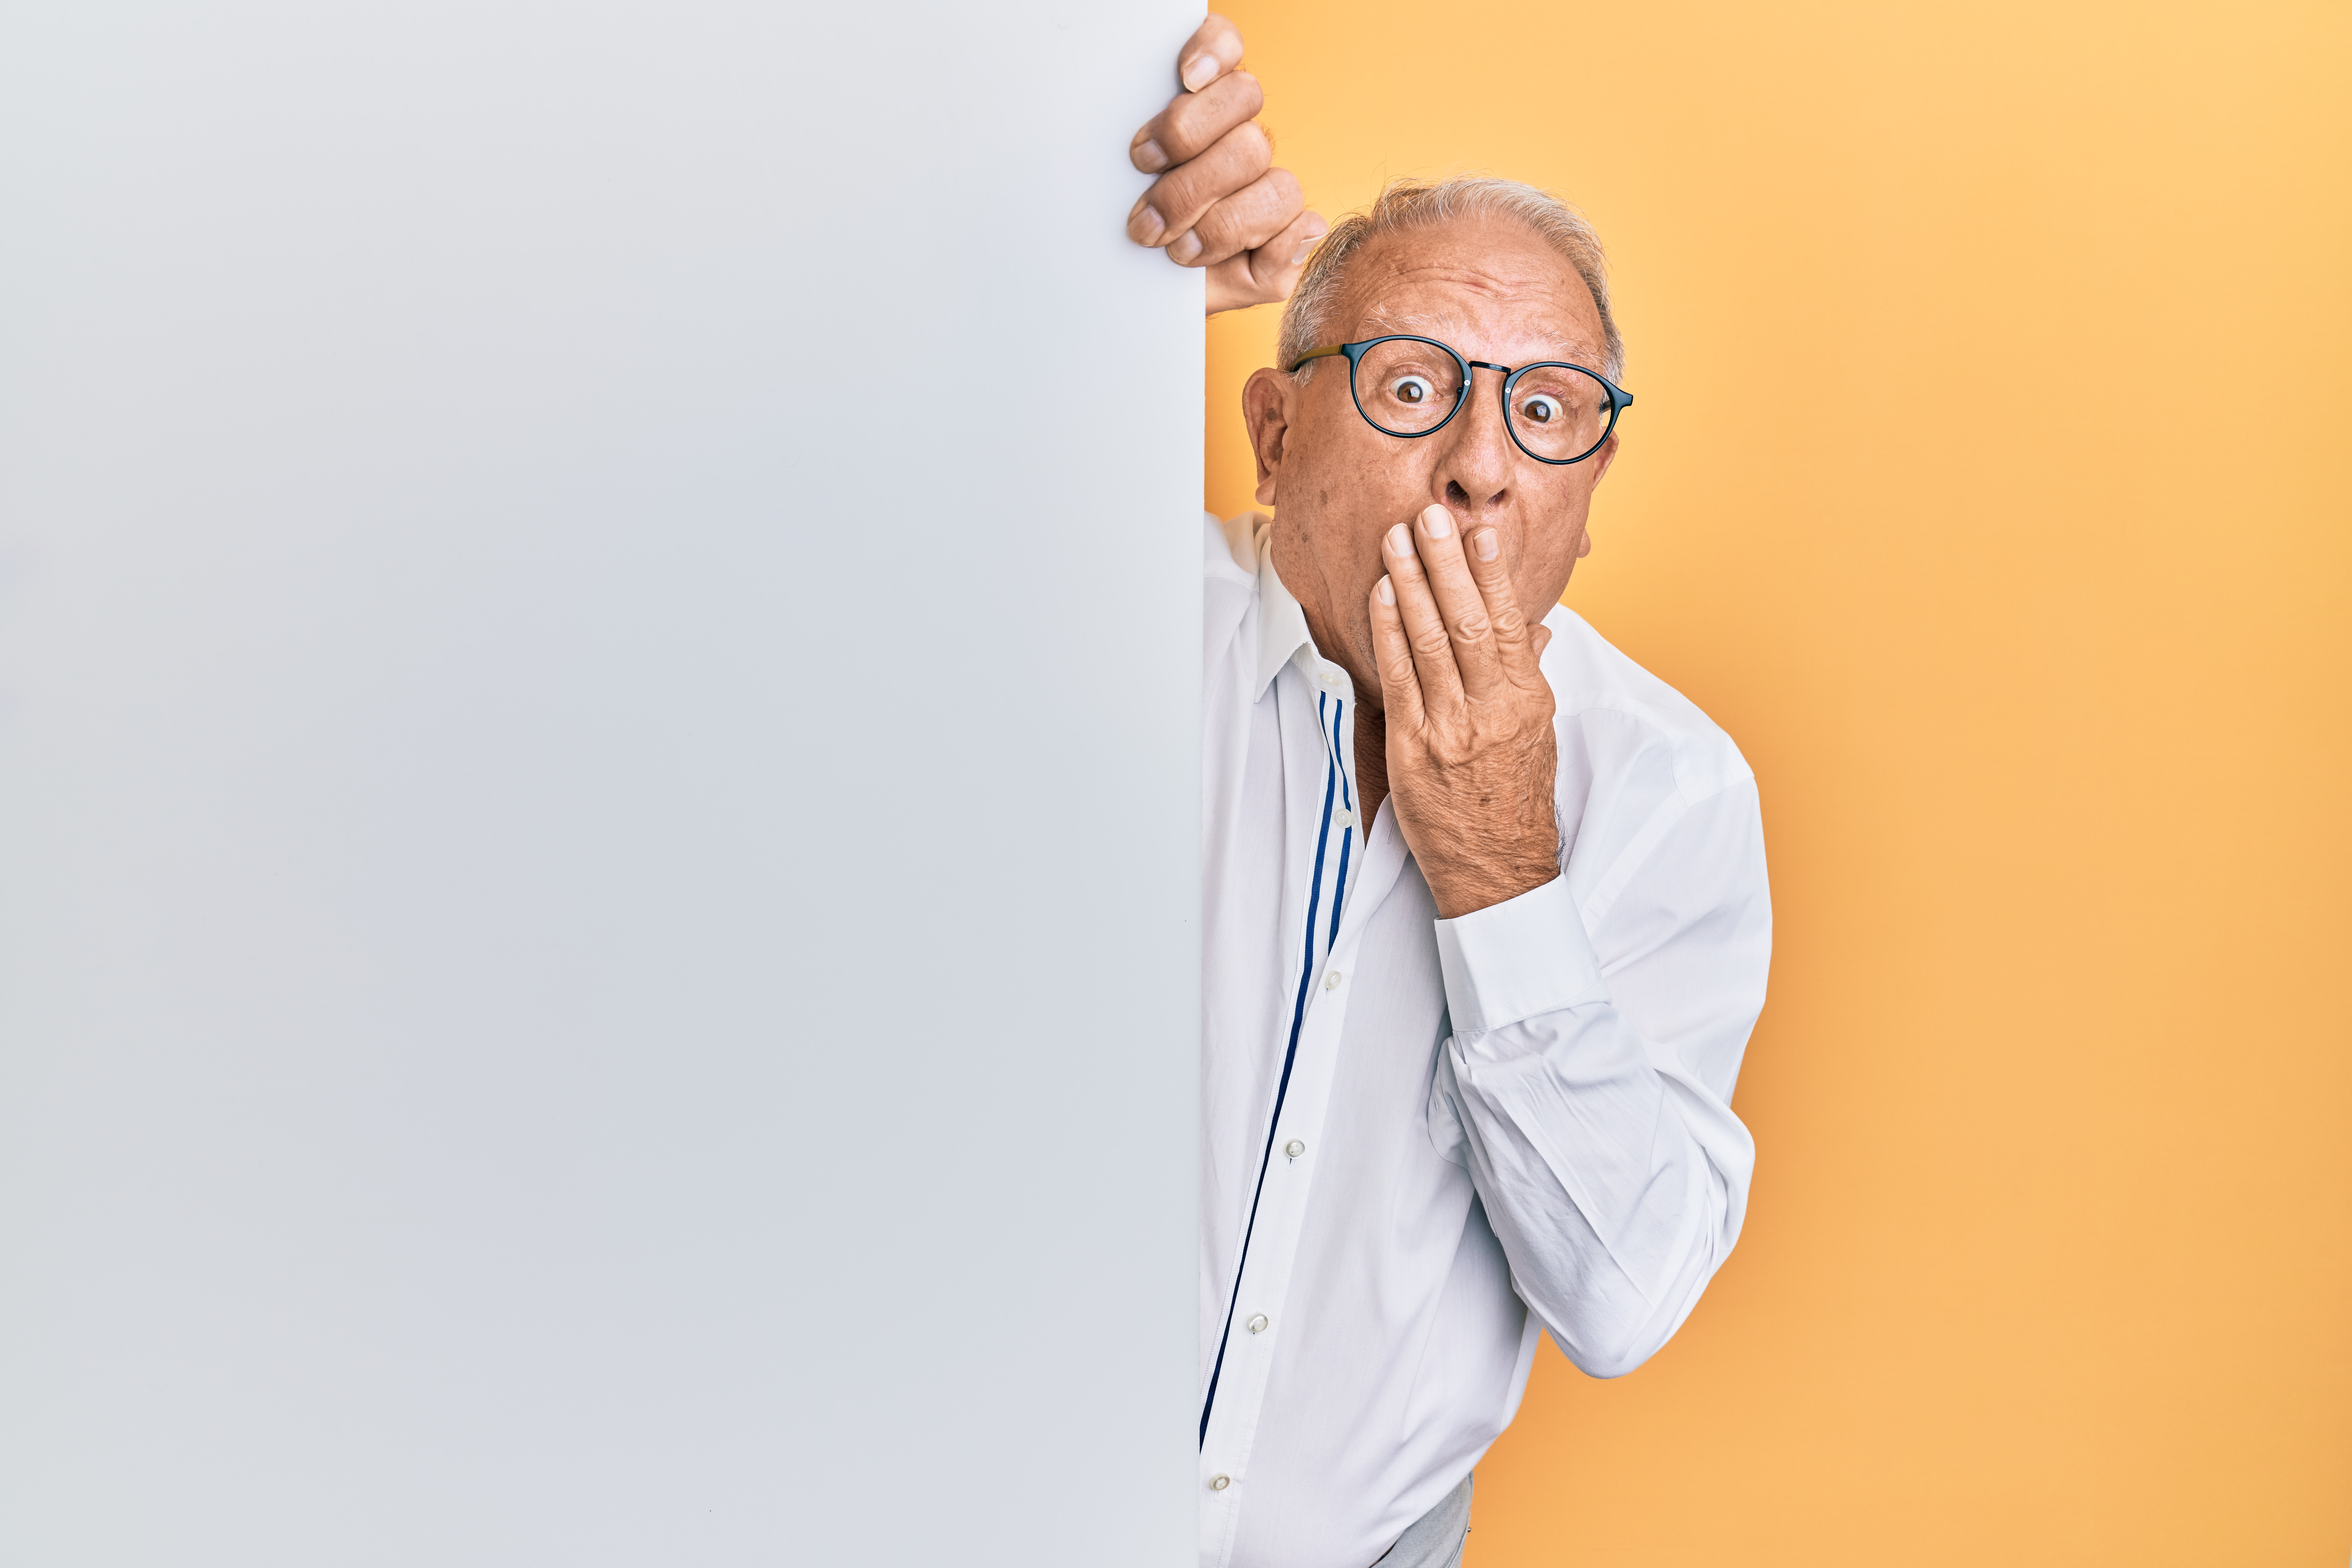 A man covers his mouth due to shock.